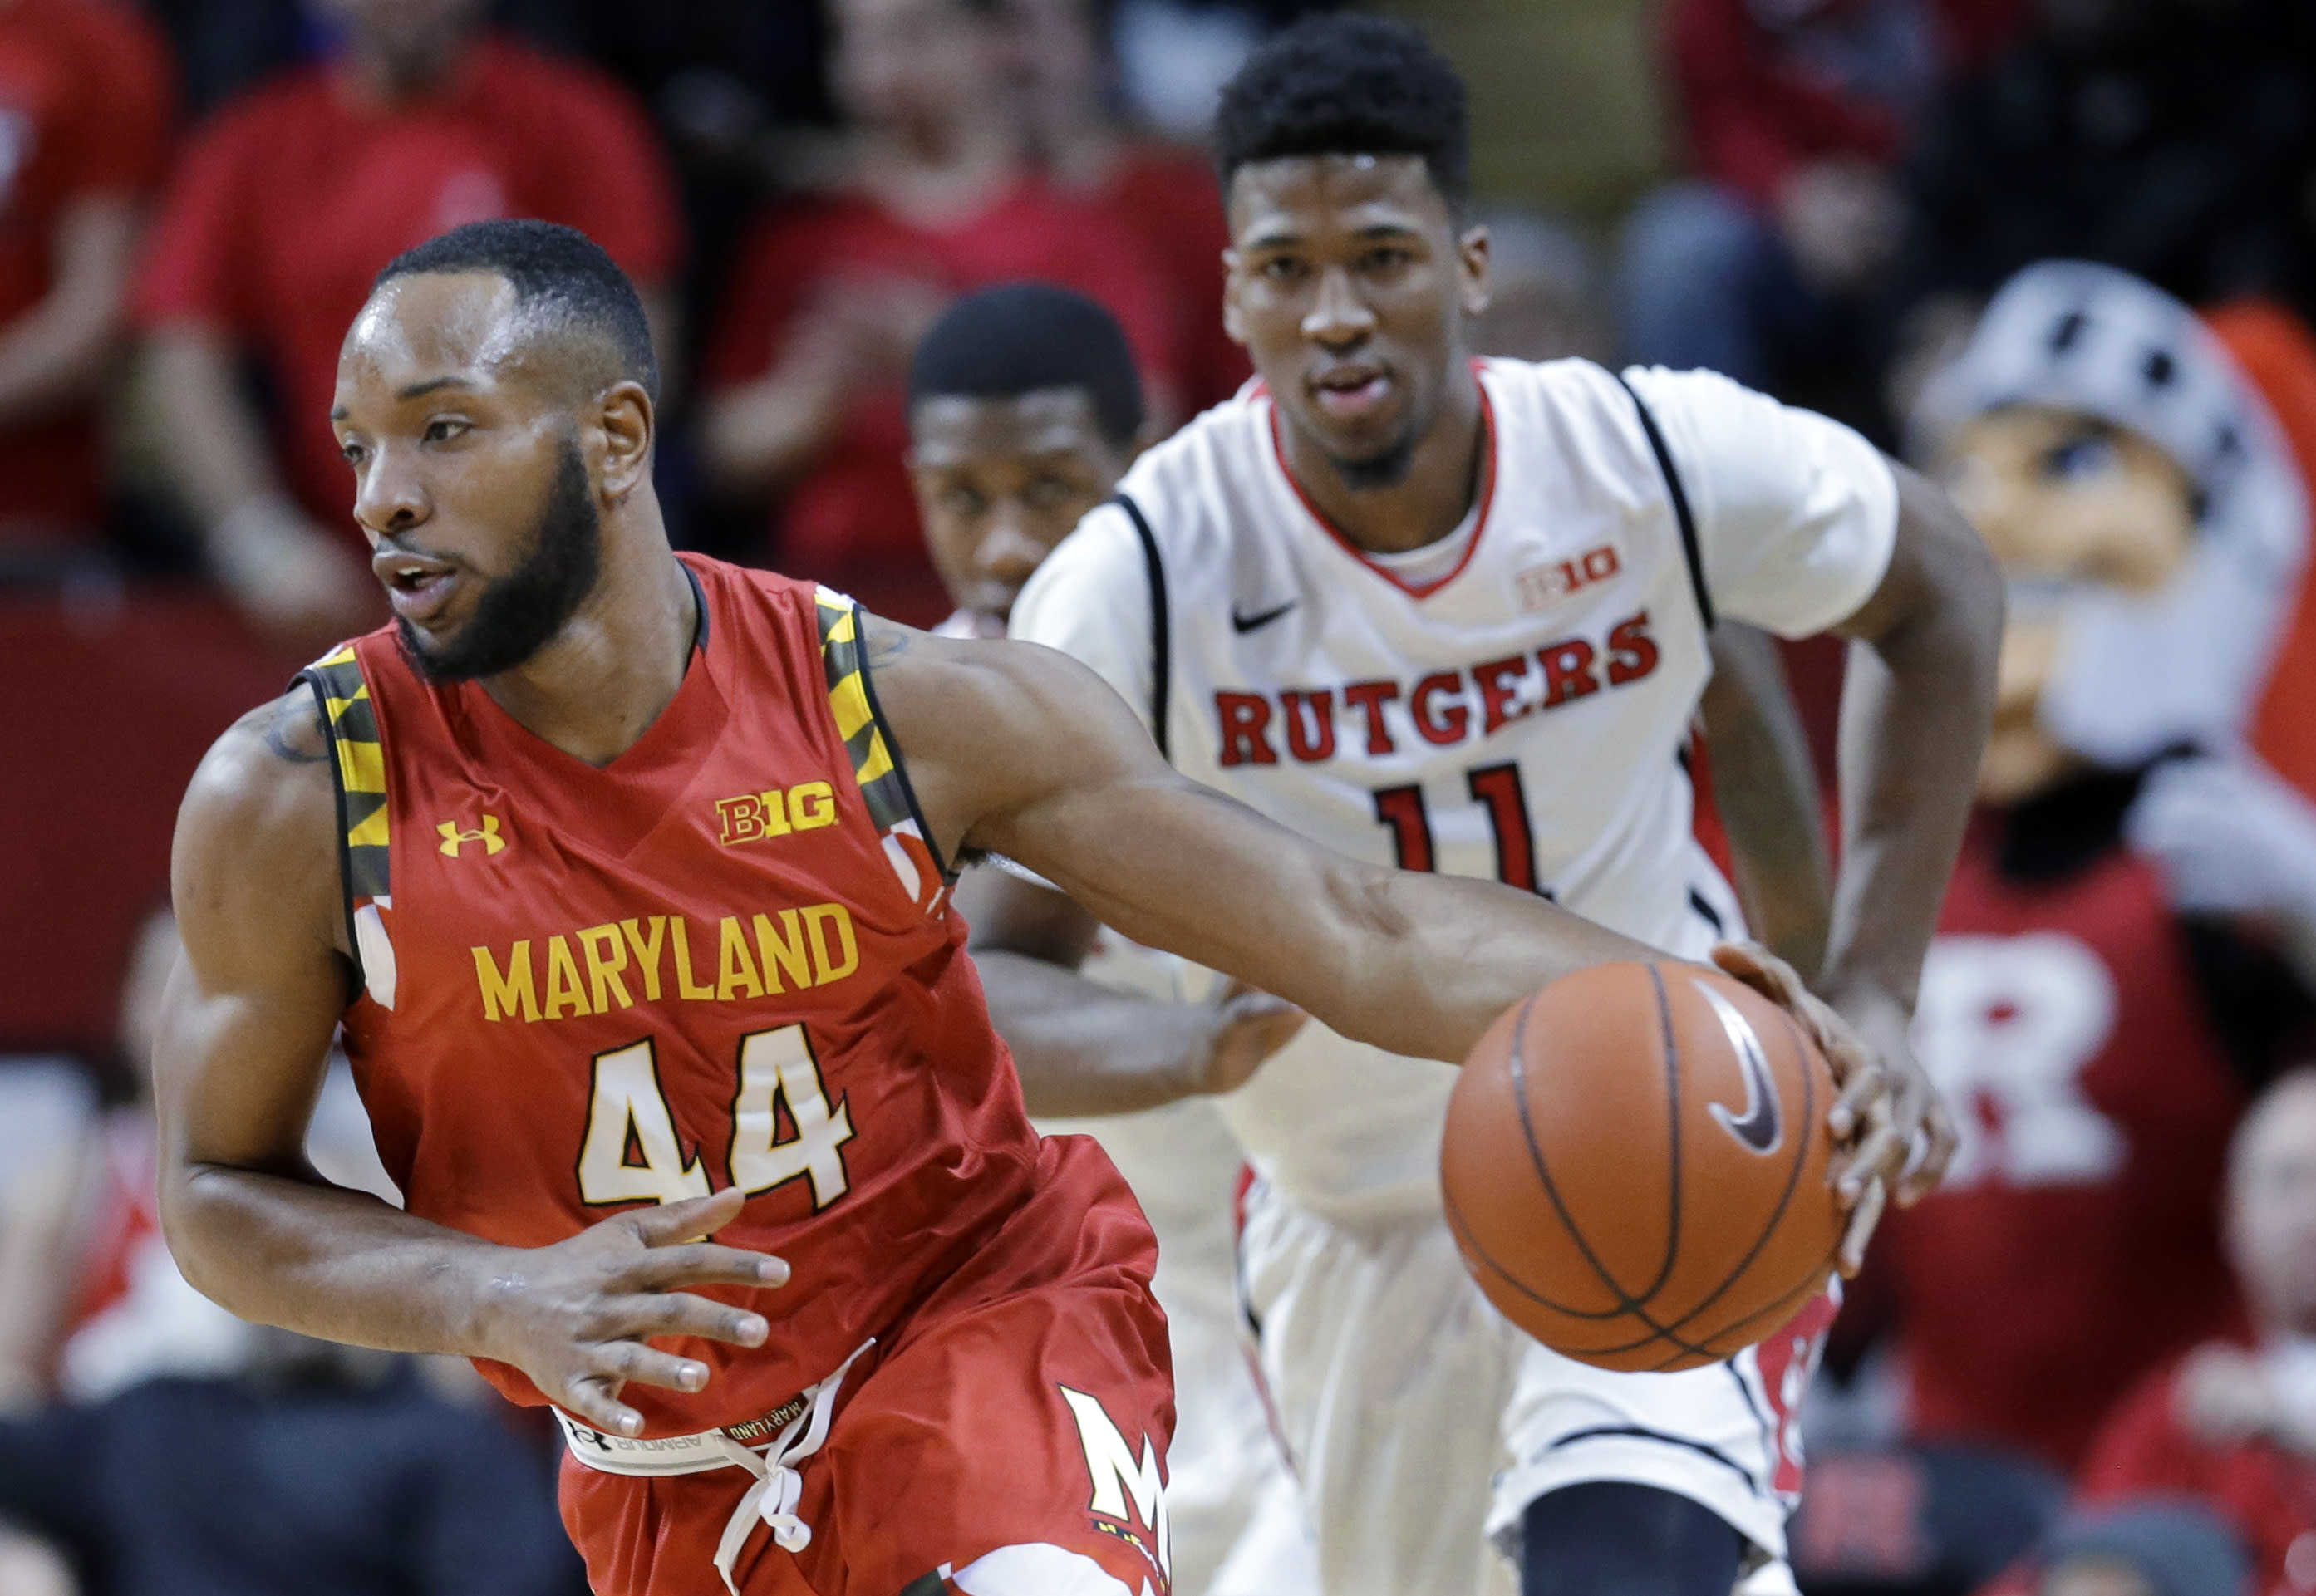 Wells' double-double carries No. 10 Maryland past Rutgers